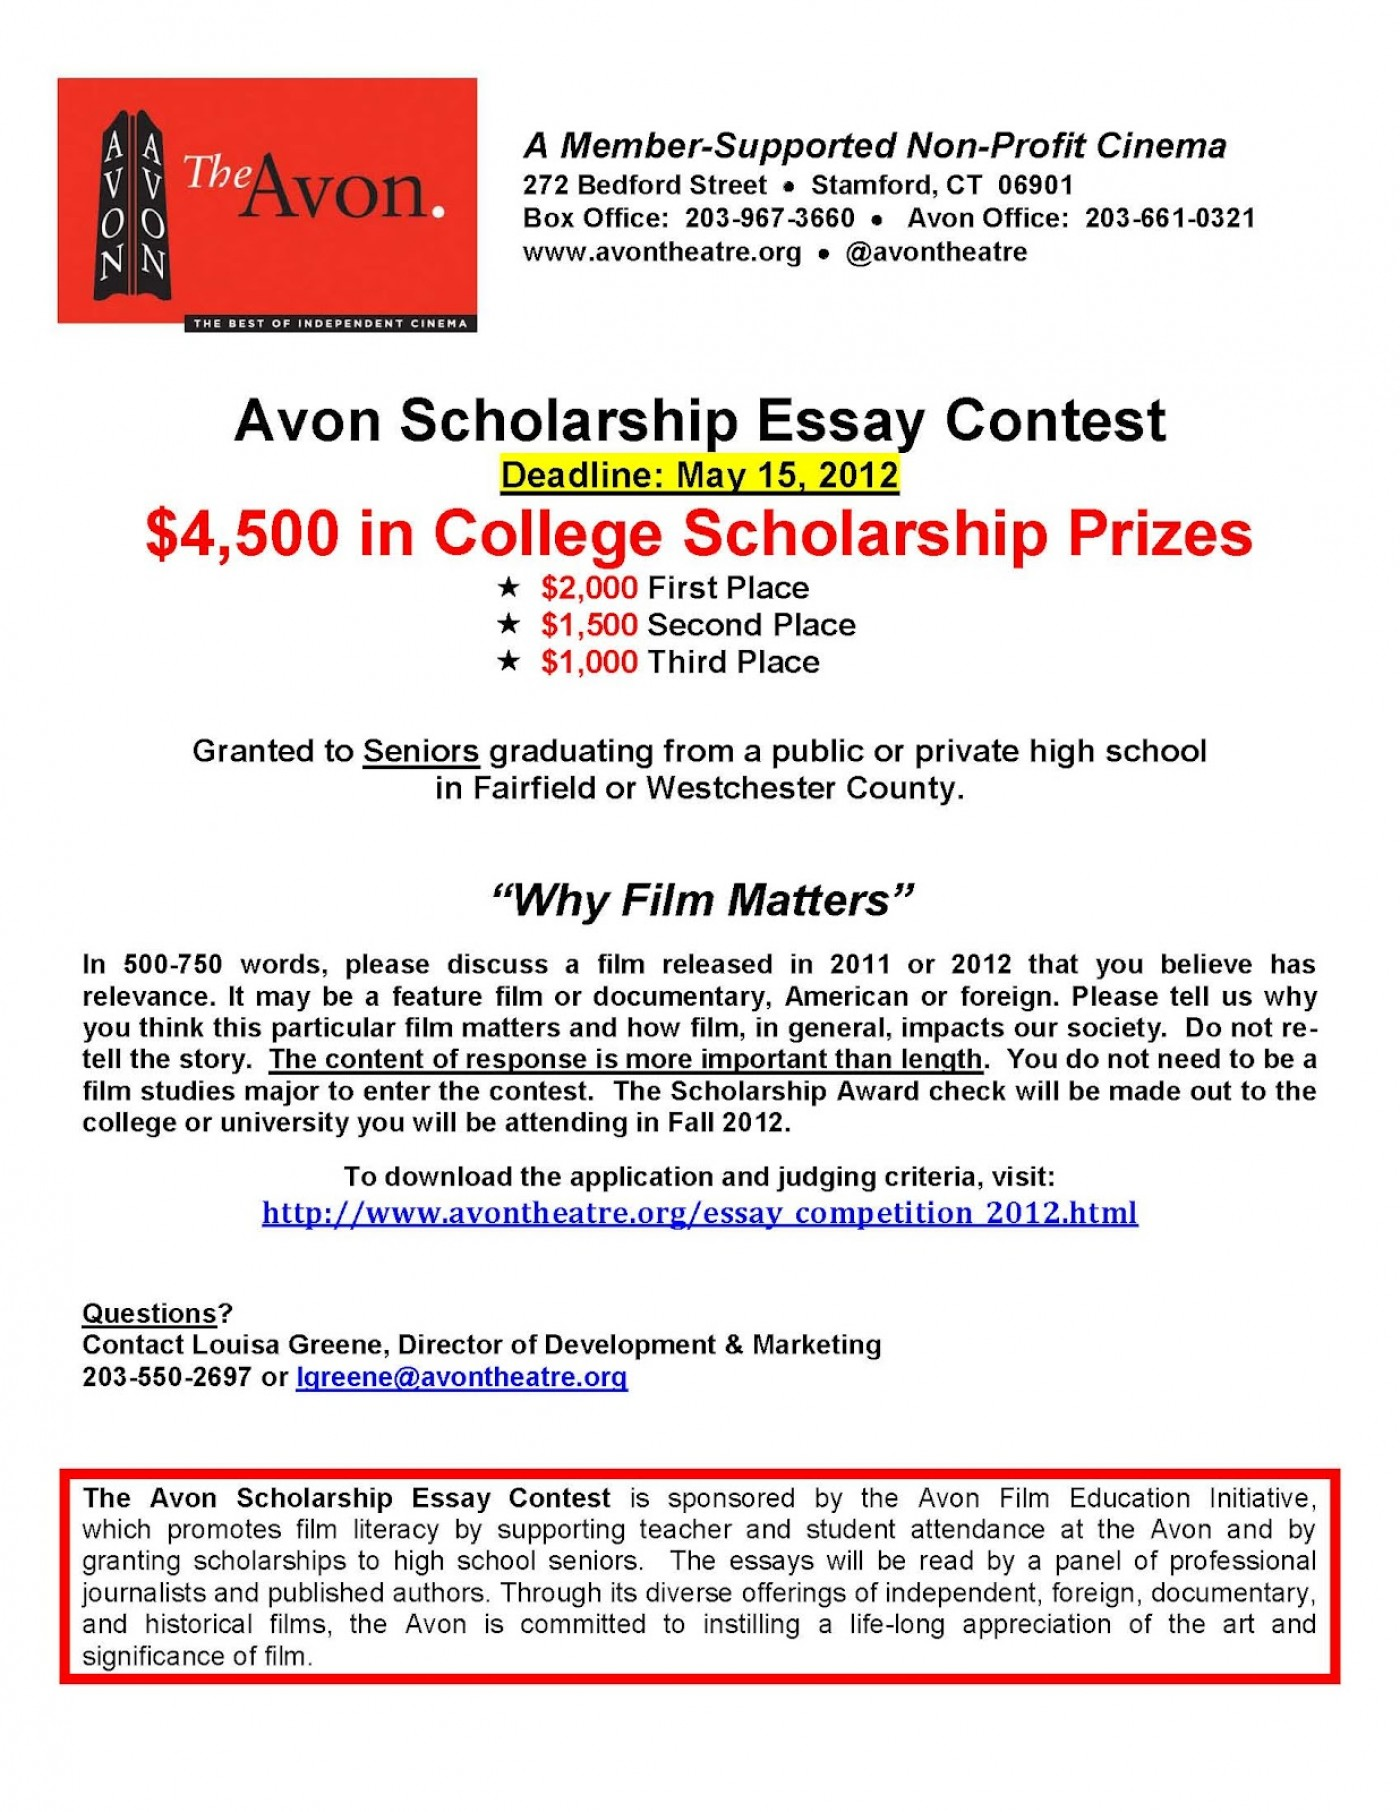 016 Avonscholarshipessaycontest2012flyer Essay Example Shocking Scholarships 2018 For International Students Examples Canada 2019 1400